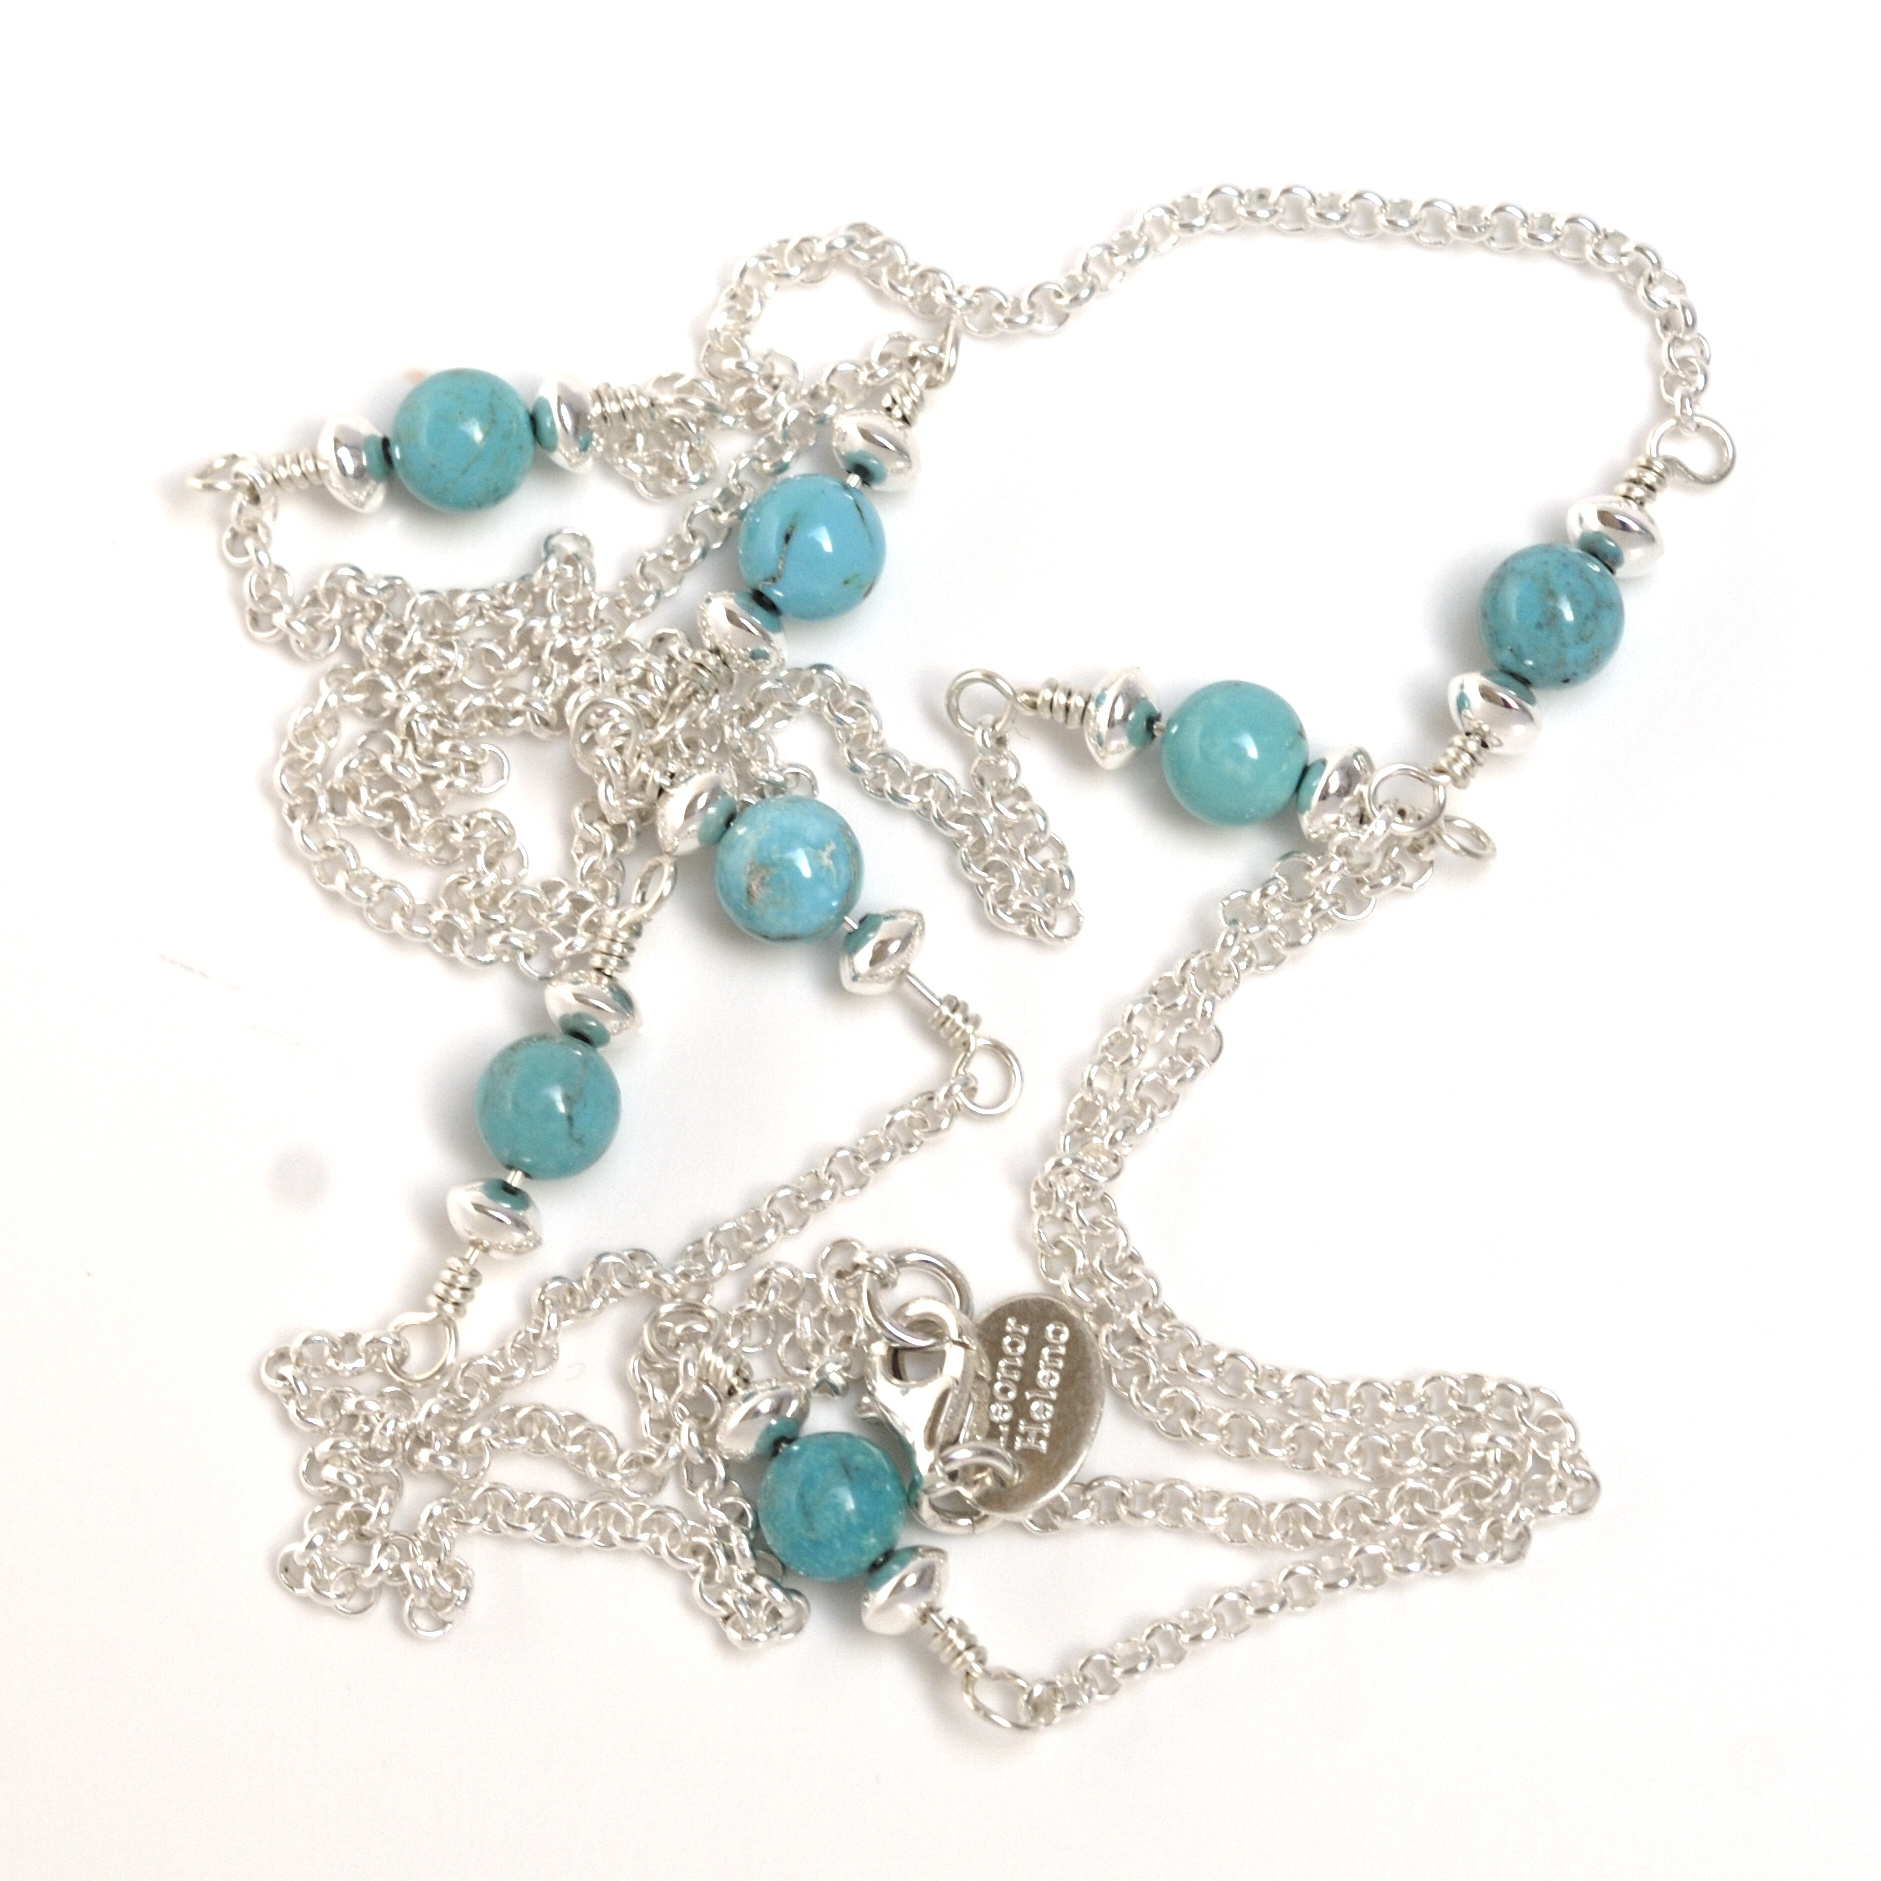 Turquoisit Necklace